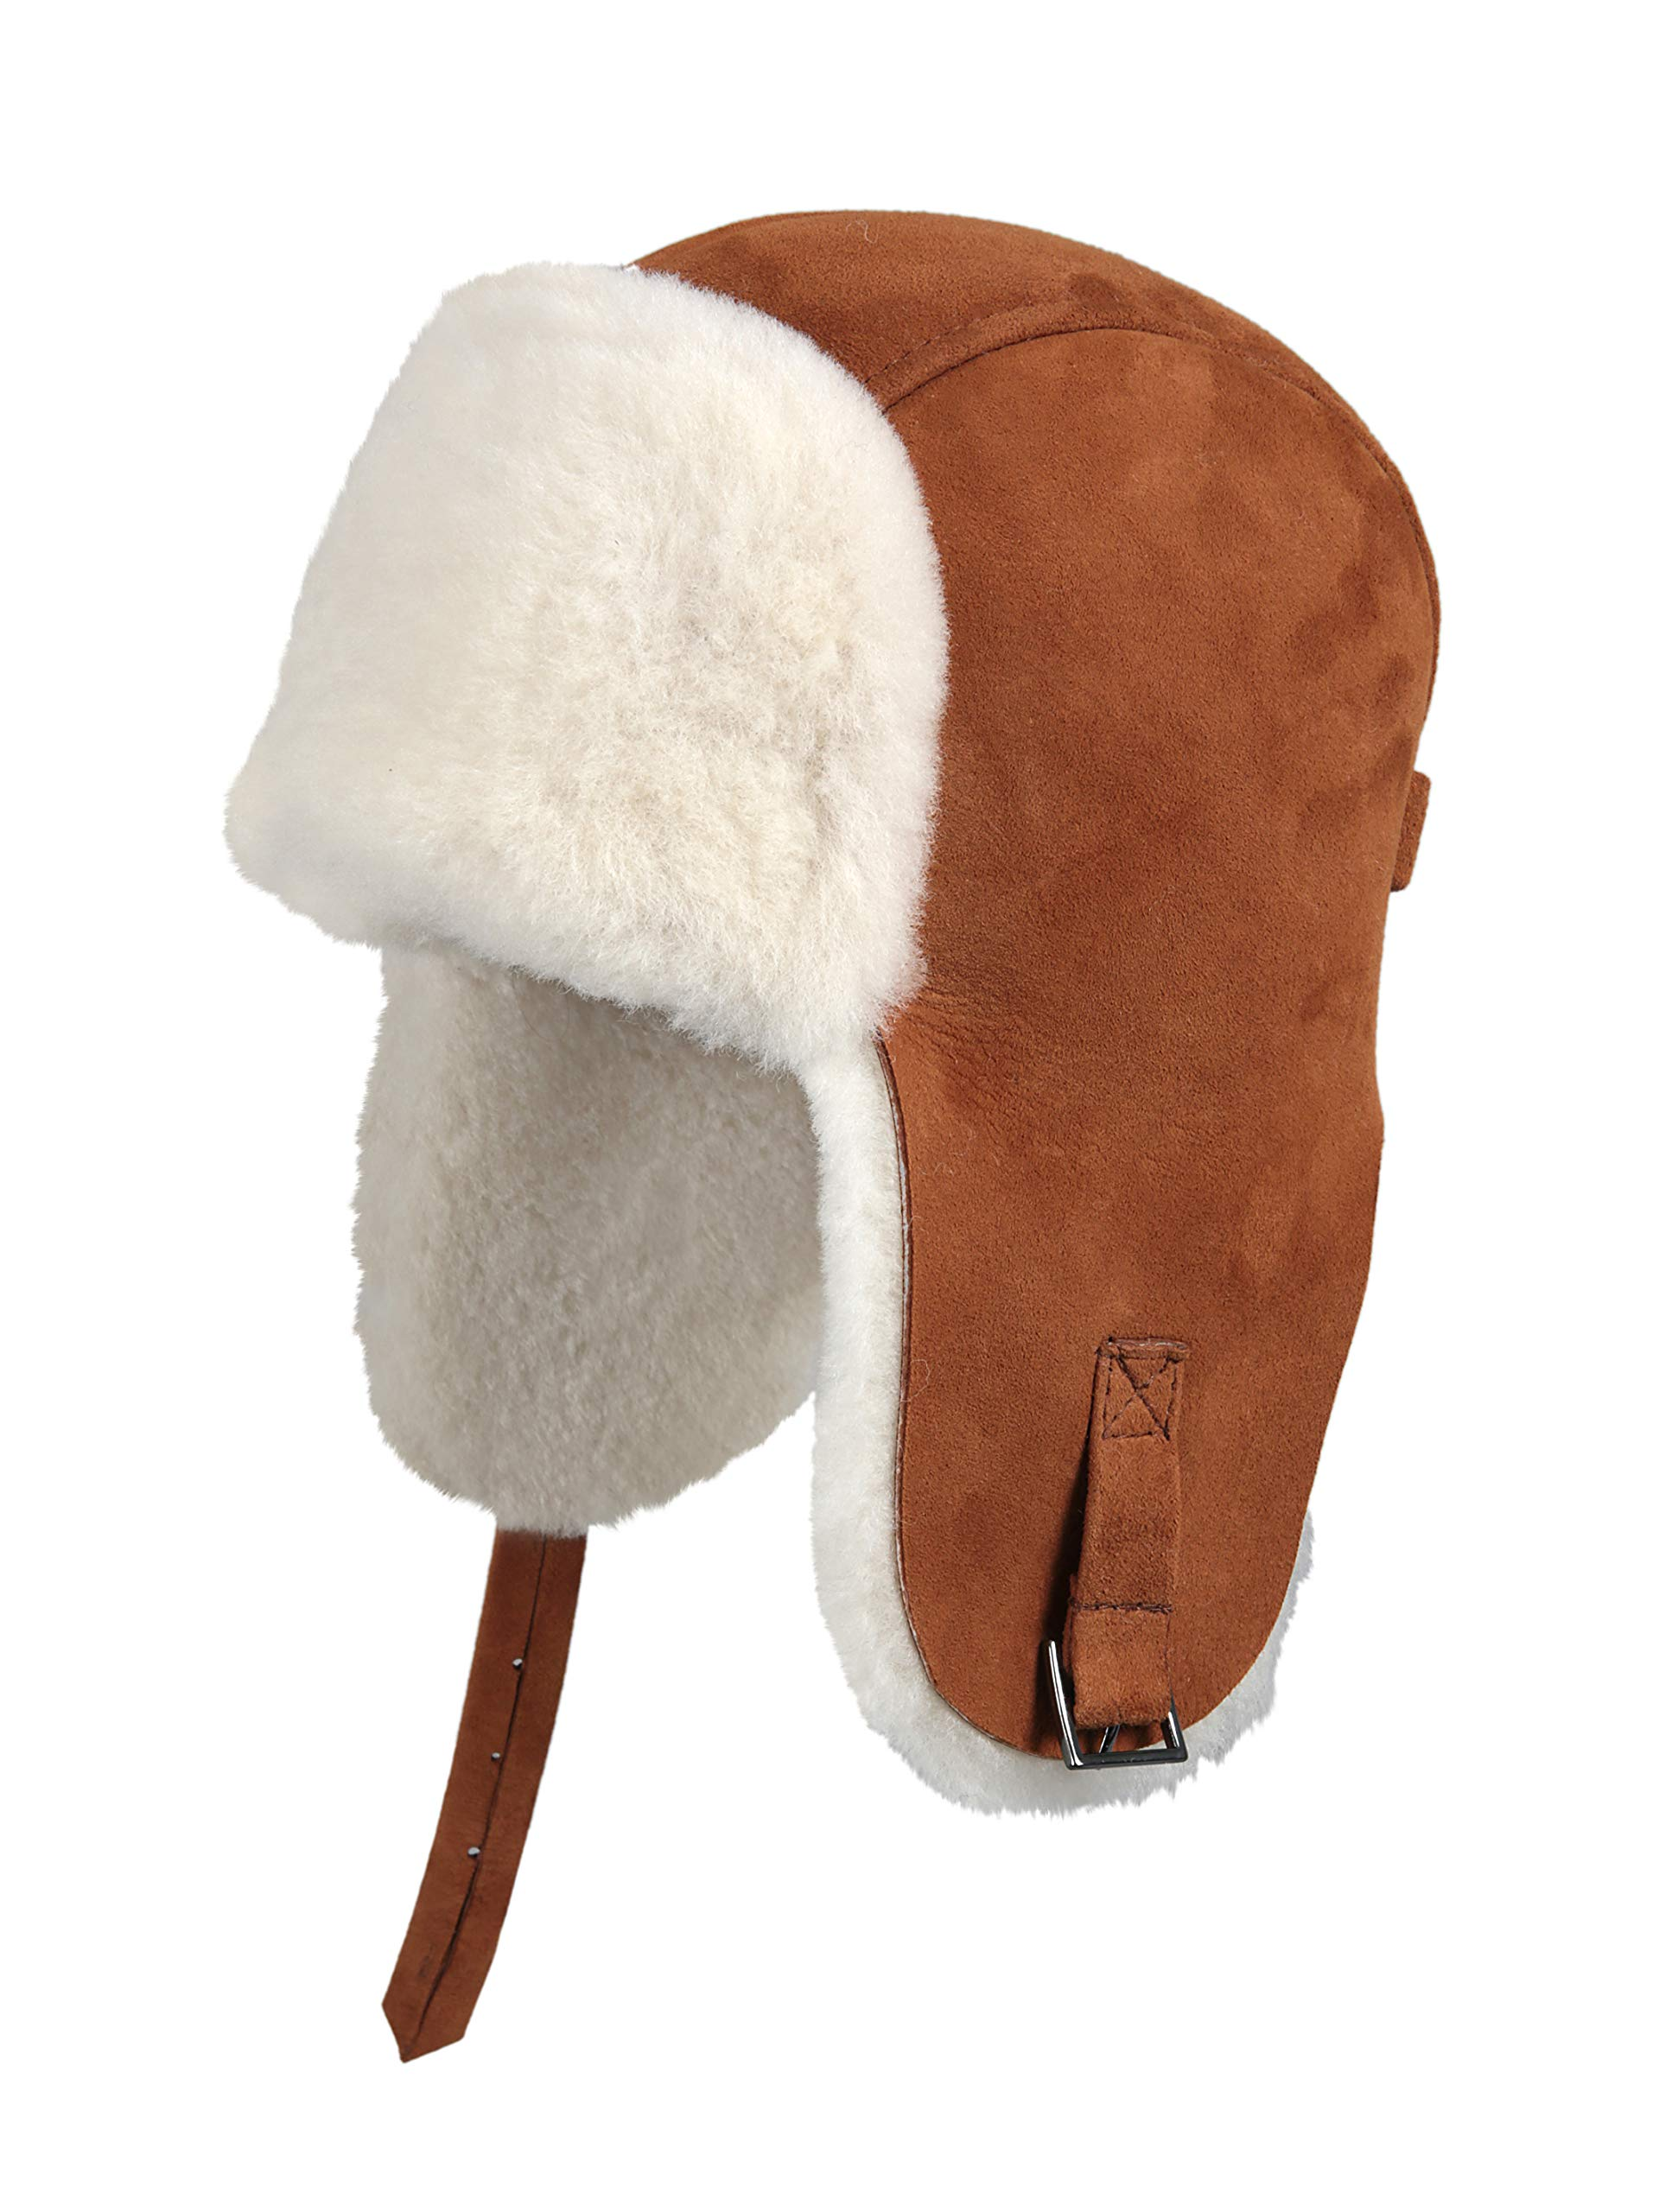 29814378829 Zavelio Unisex Shearling Sheepskin Winter Fur Beanie Hat · Zavelio Men s Shearling  Sheepskin Pilot Hat